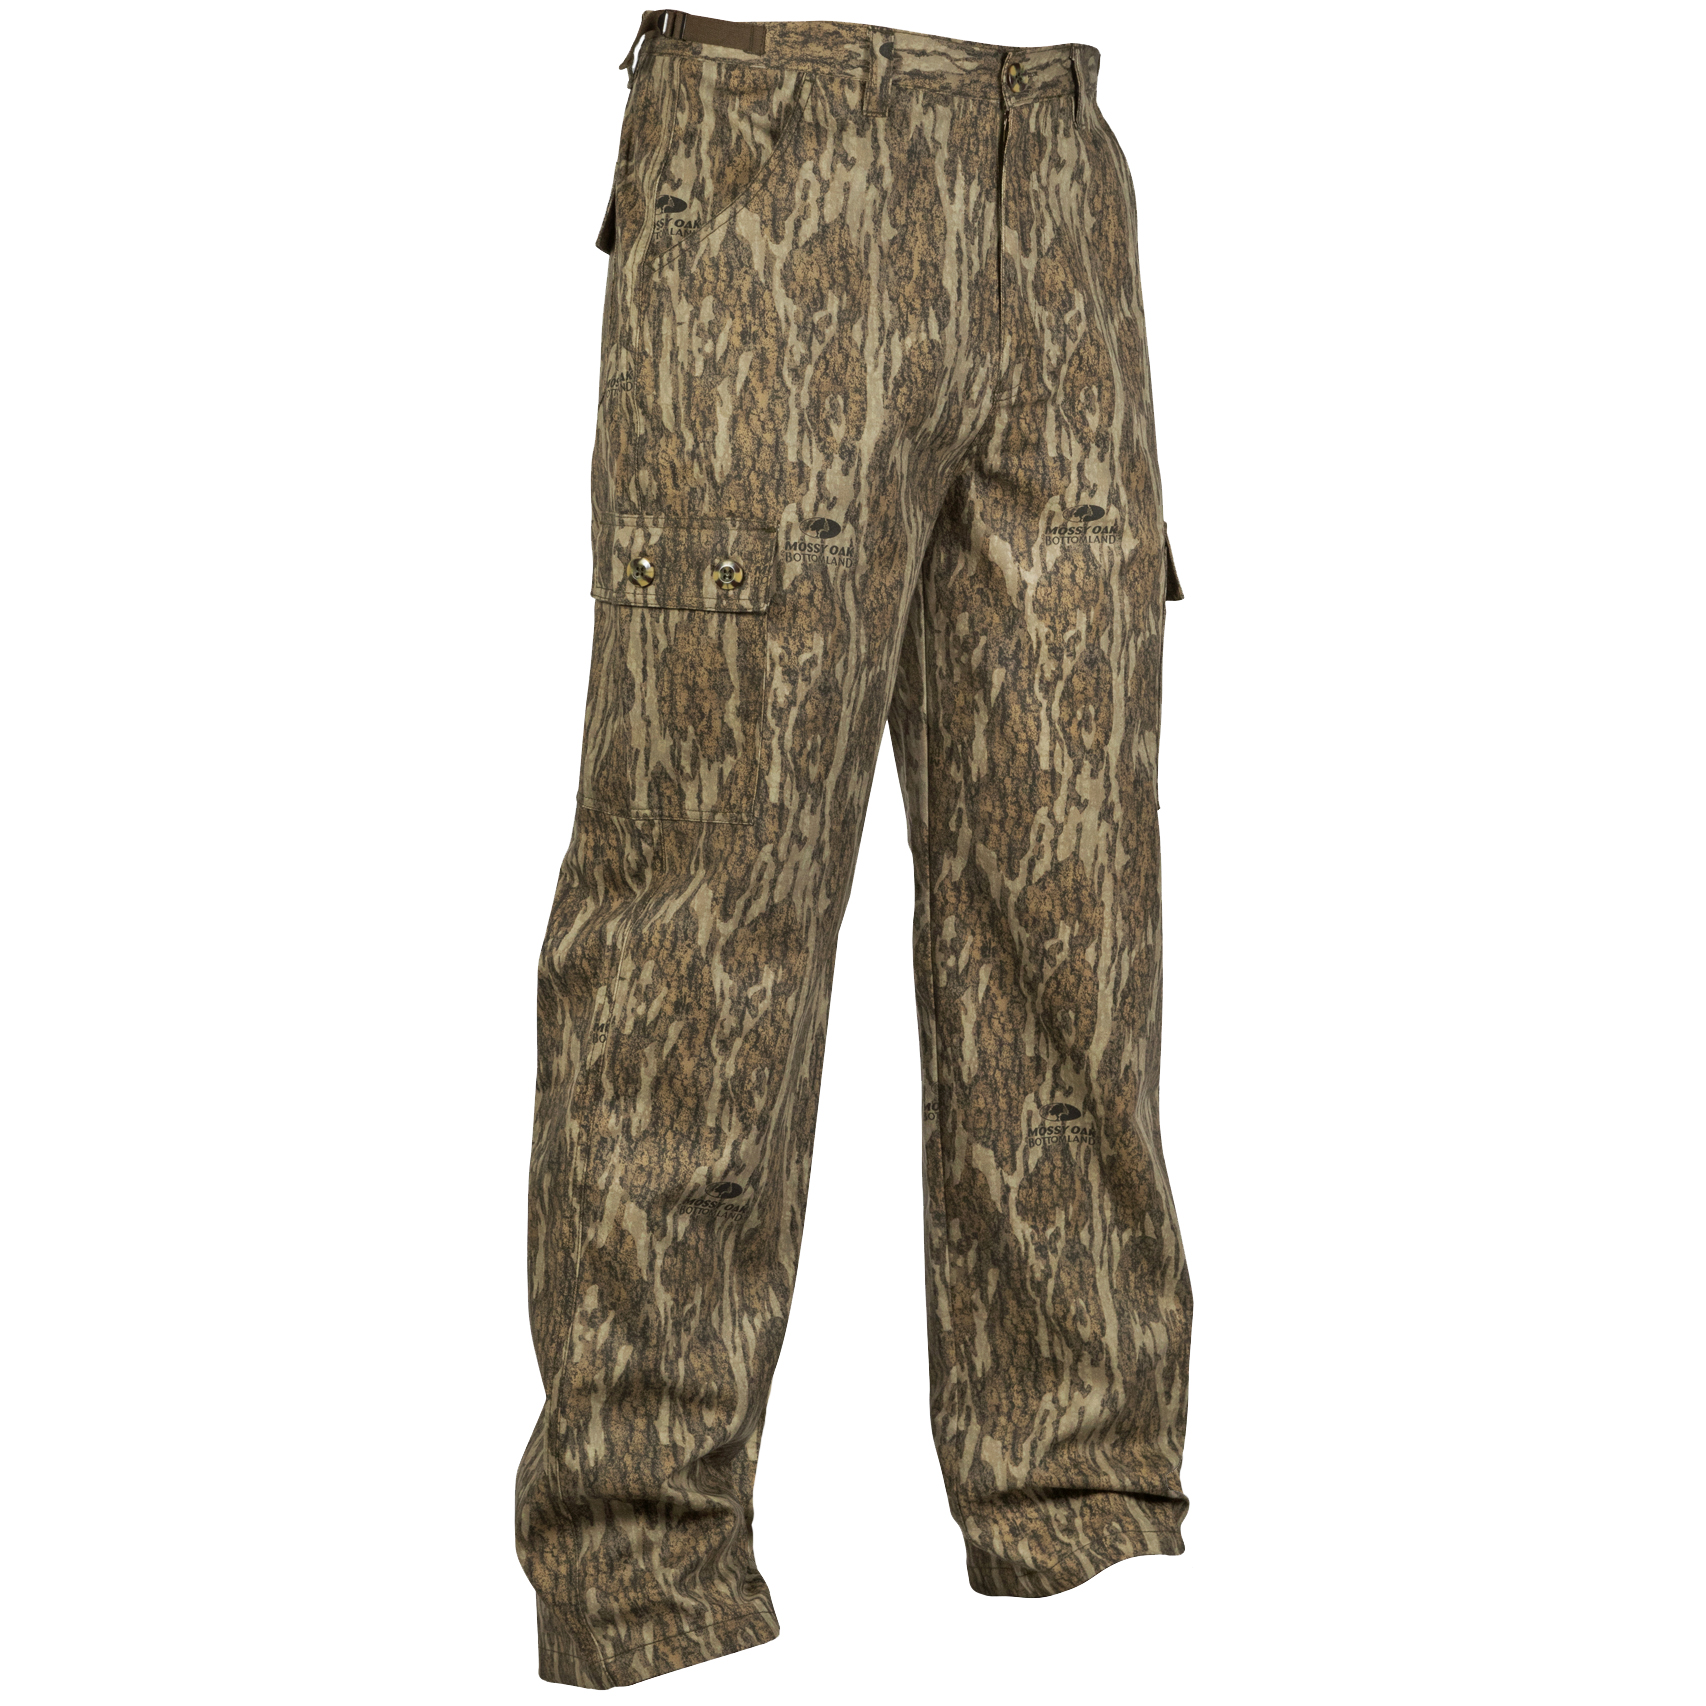 The Mossy Oak Store: Online Shopping for Hunting & Camo Apparel ...